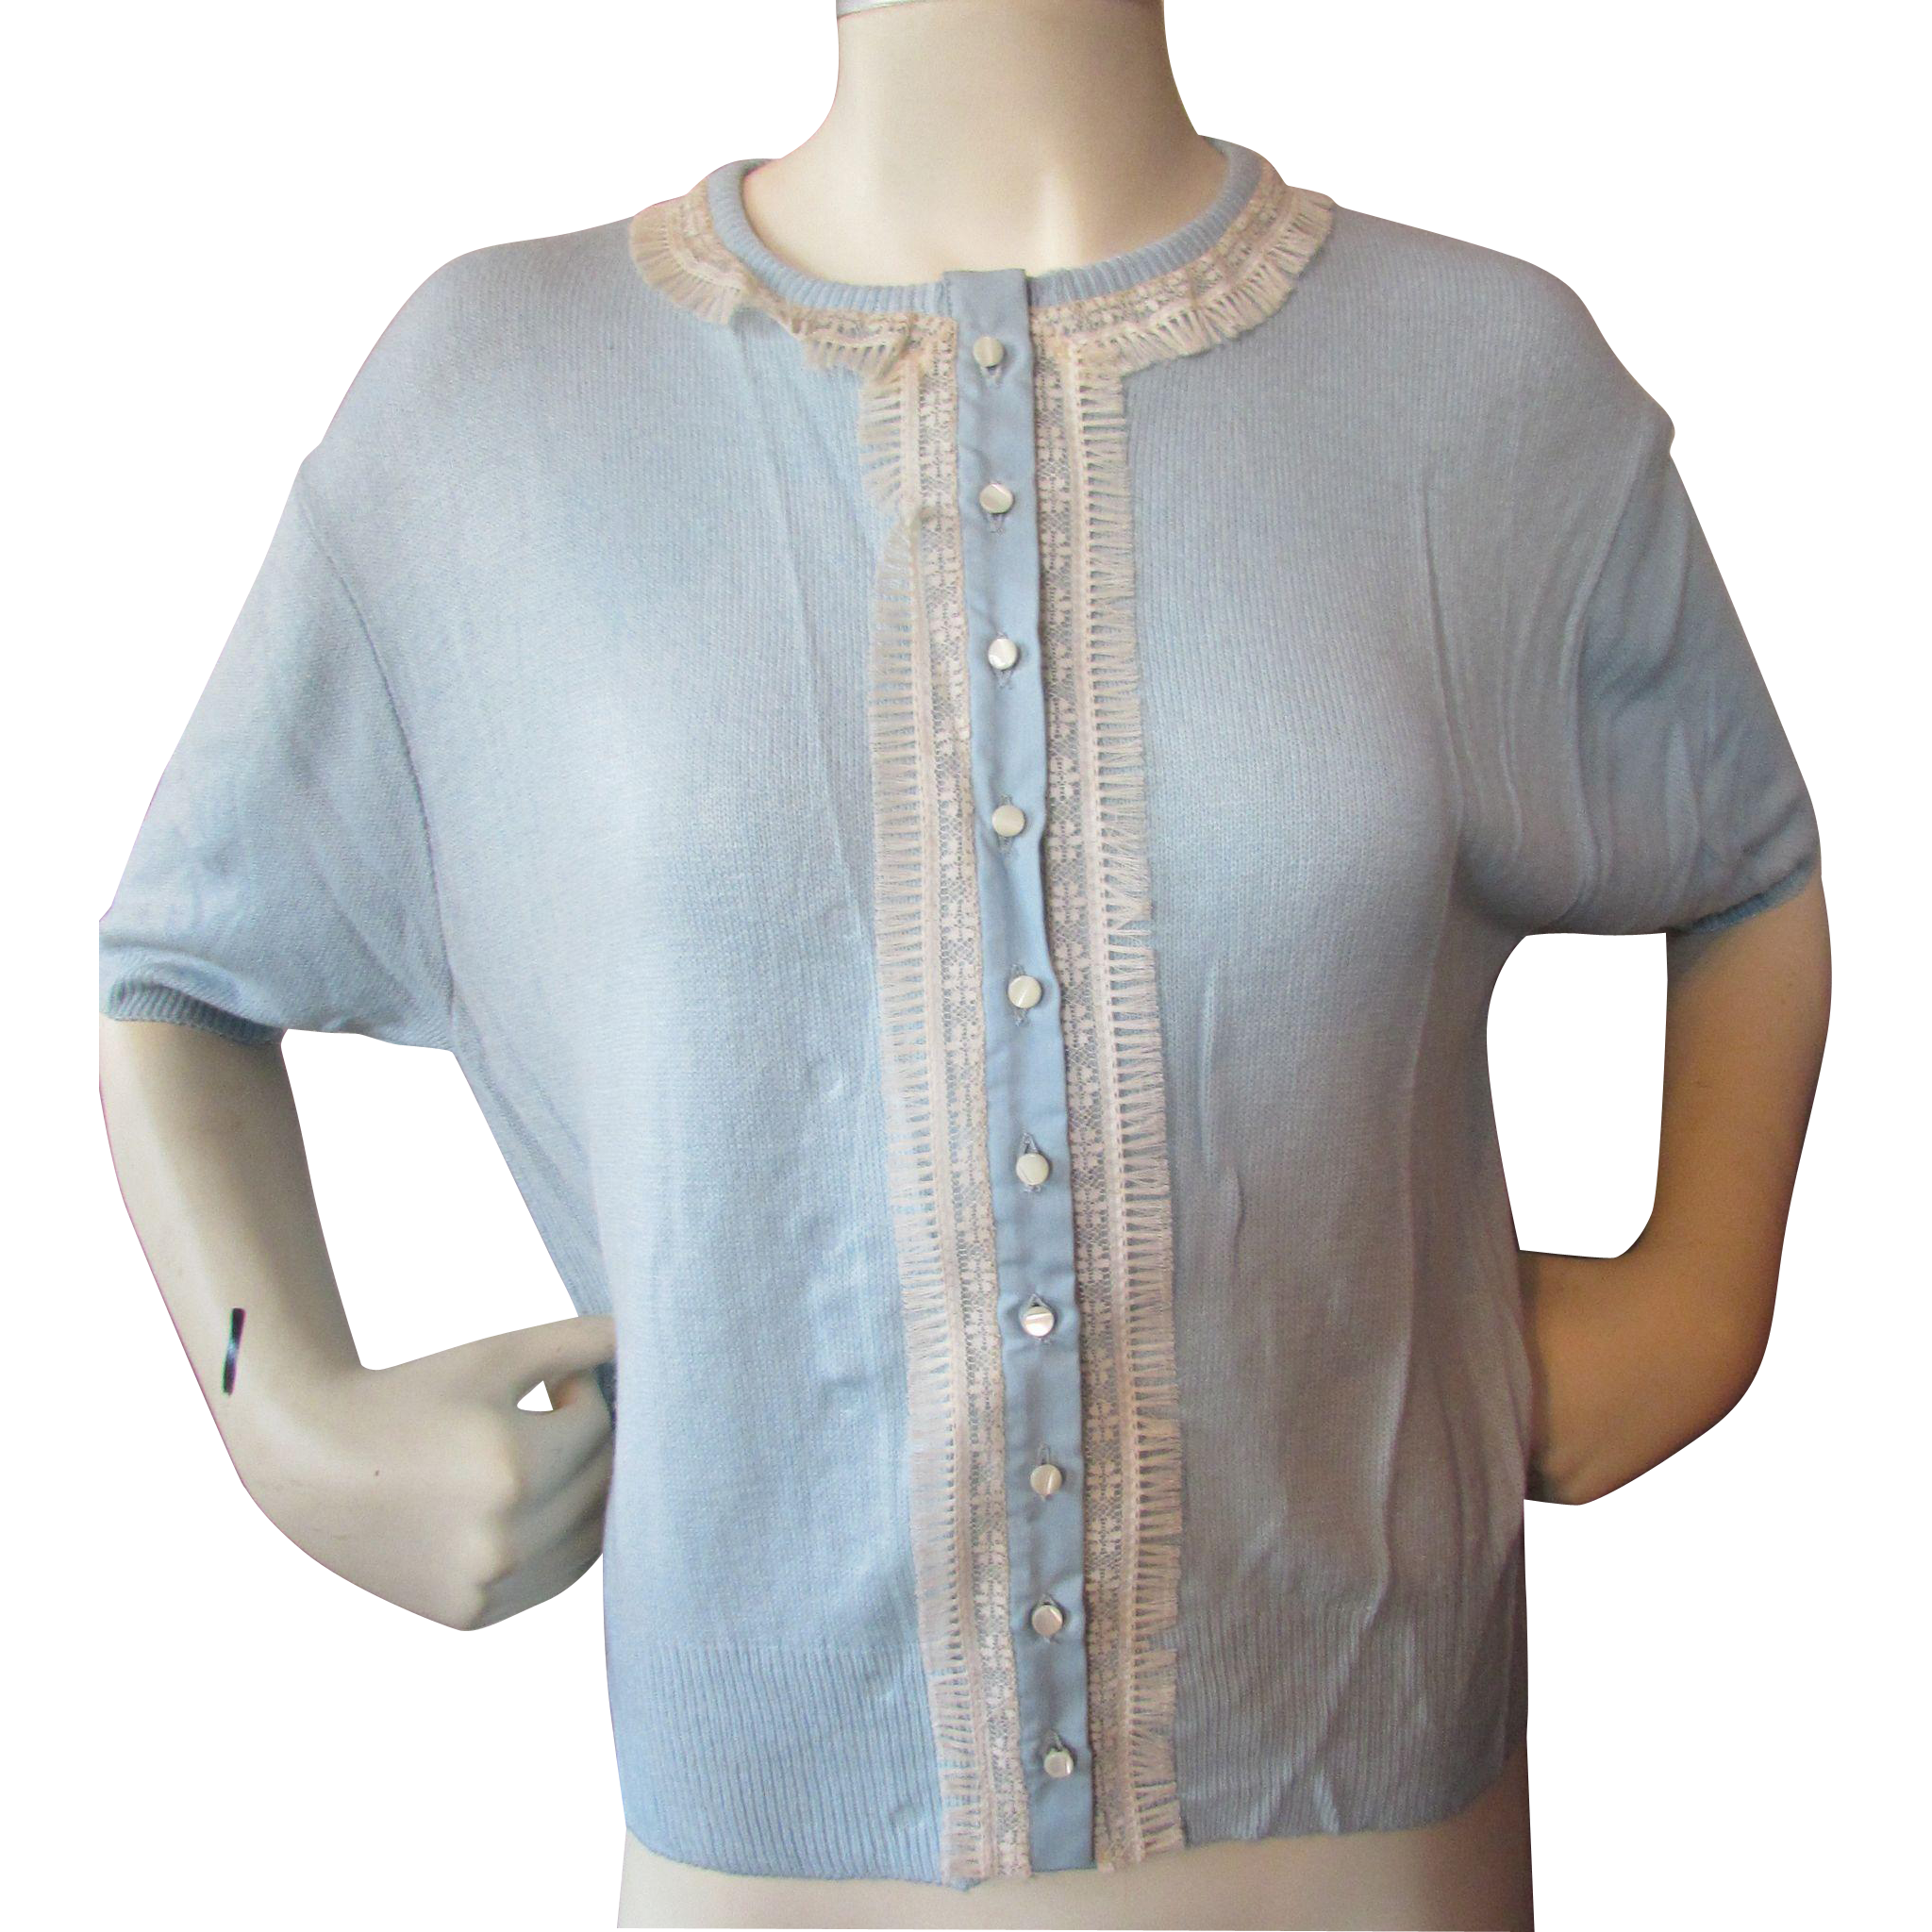 Mid-Century Orlon Sweater in Powder Blue New Old Stock from Marshall Field